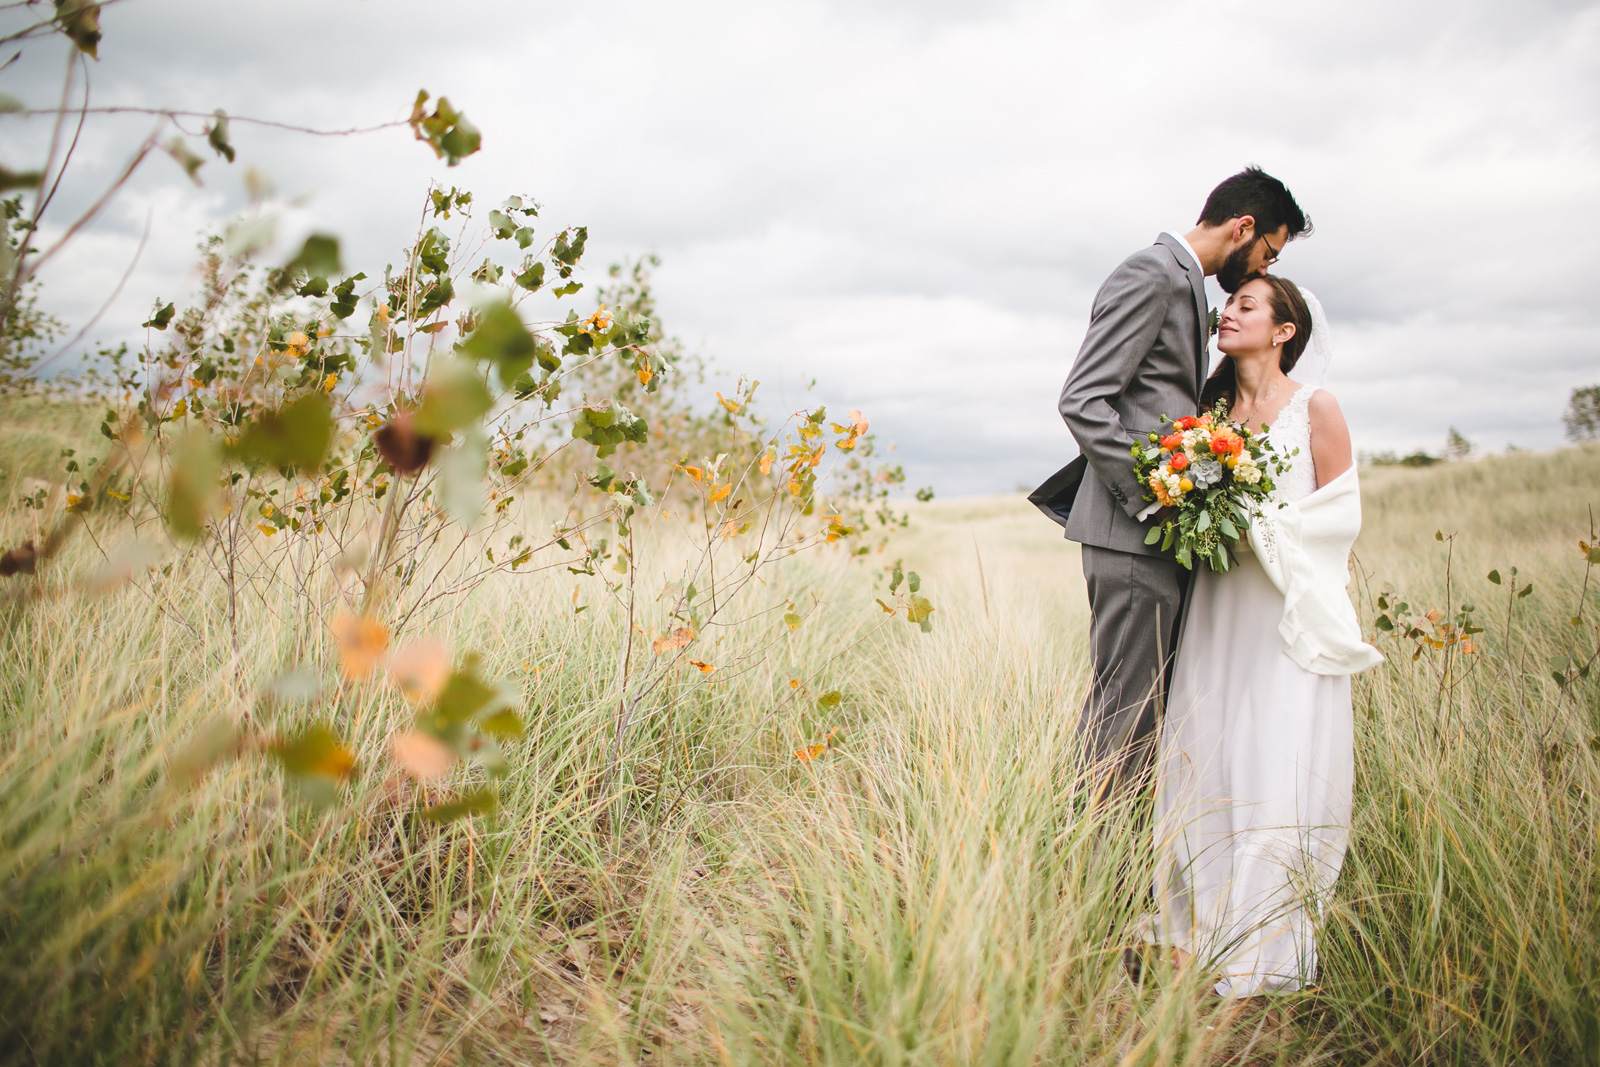 Documentary Wedding Photographer Chicago - Mark Trela Photography